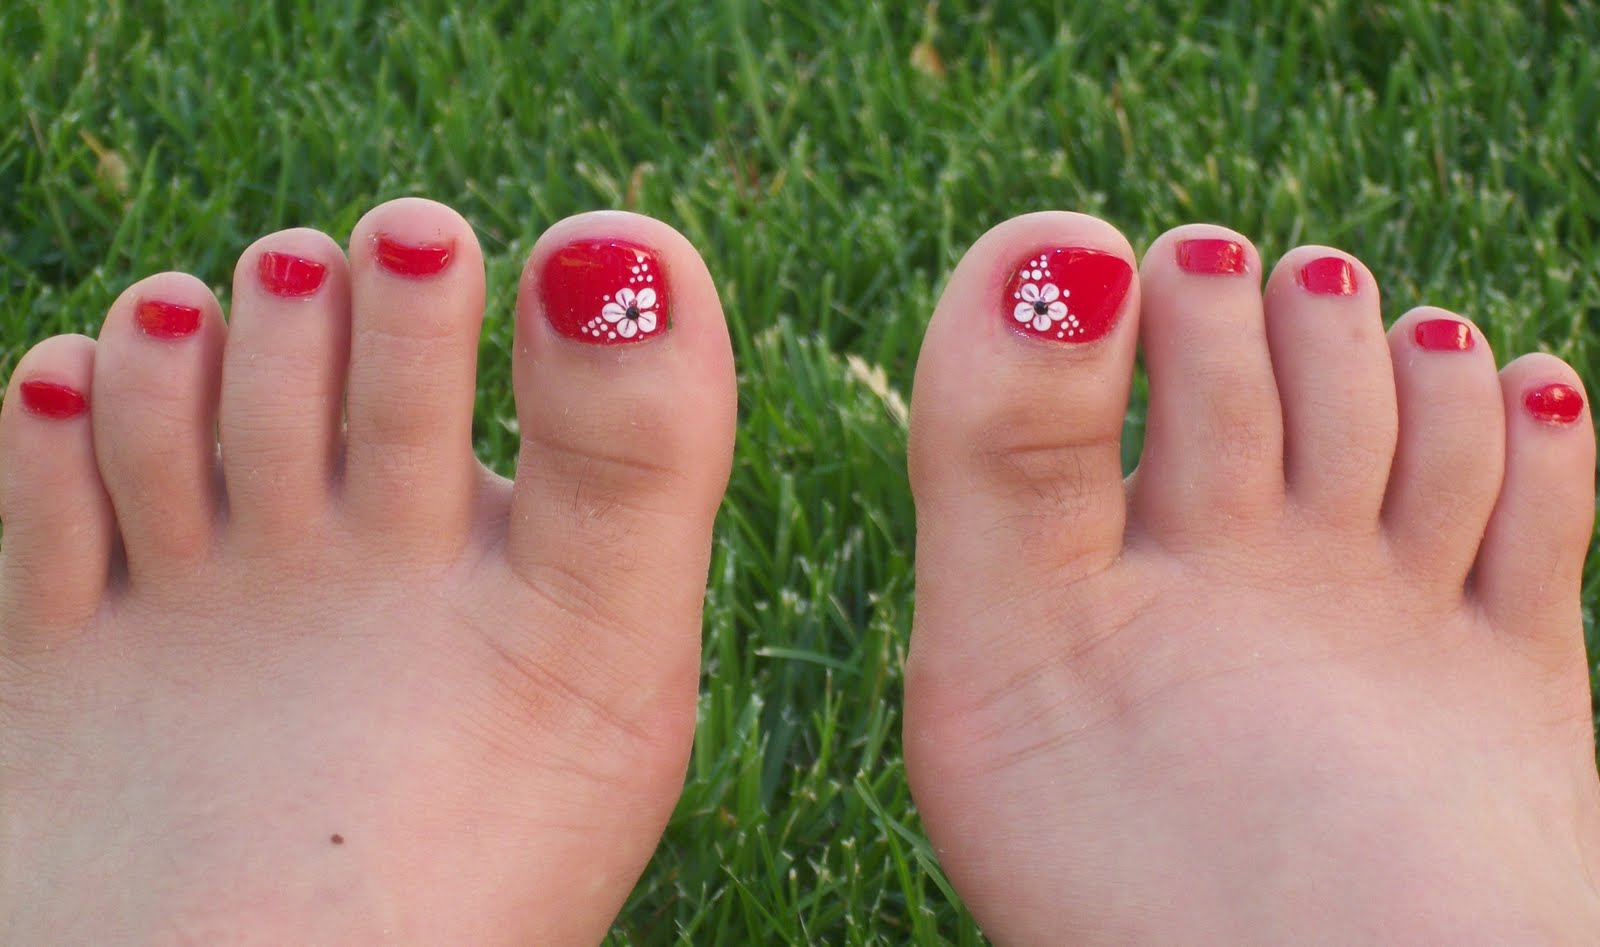 Forum on this topic: Top Tools for an At-Home Manicure, top-tools-for-an-at-home-manicure/